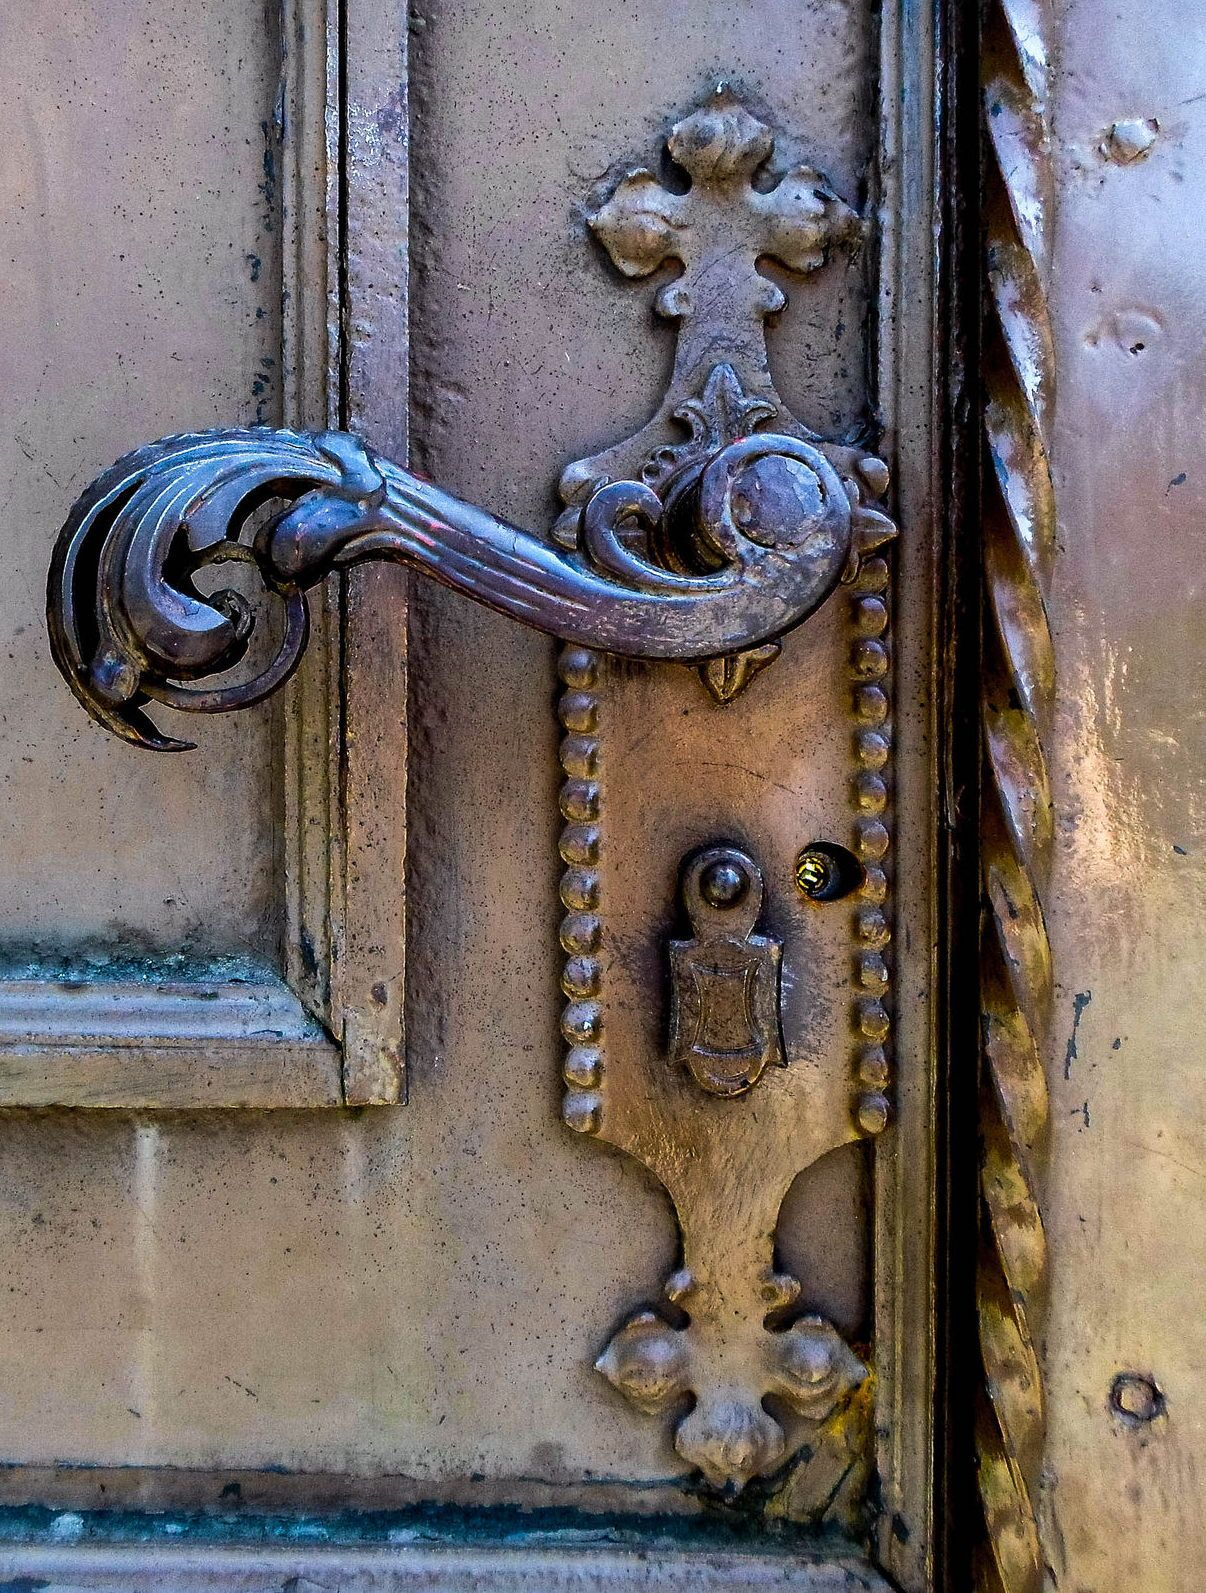 Poignée De Porte Paris Épinglé Par Dominique Giannotti Sur Doors And Windows